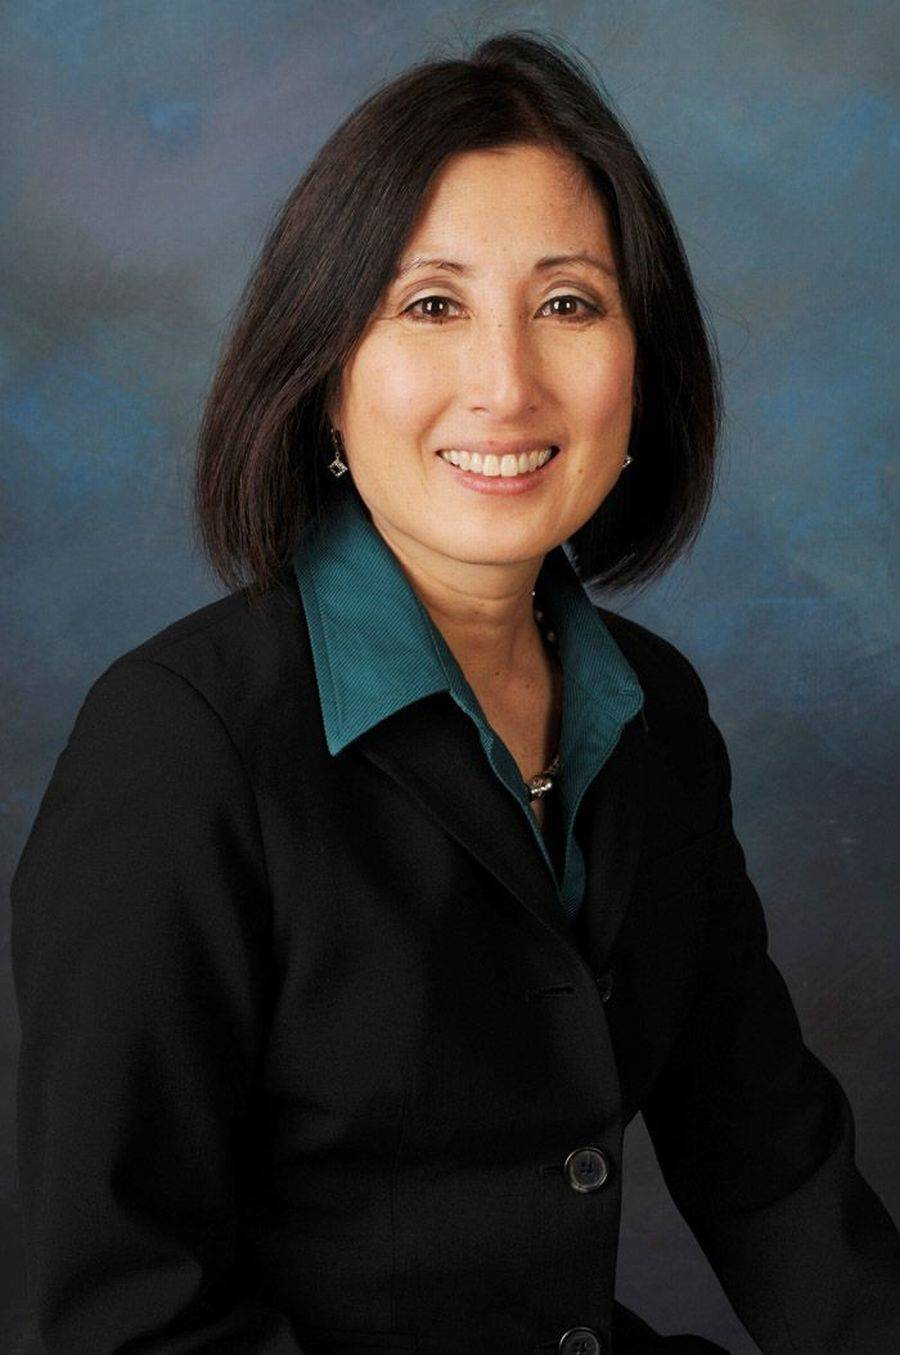 Lori Yokoyama, running for Cook State's Attorney